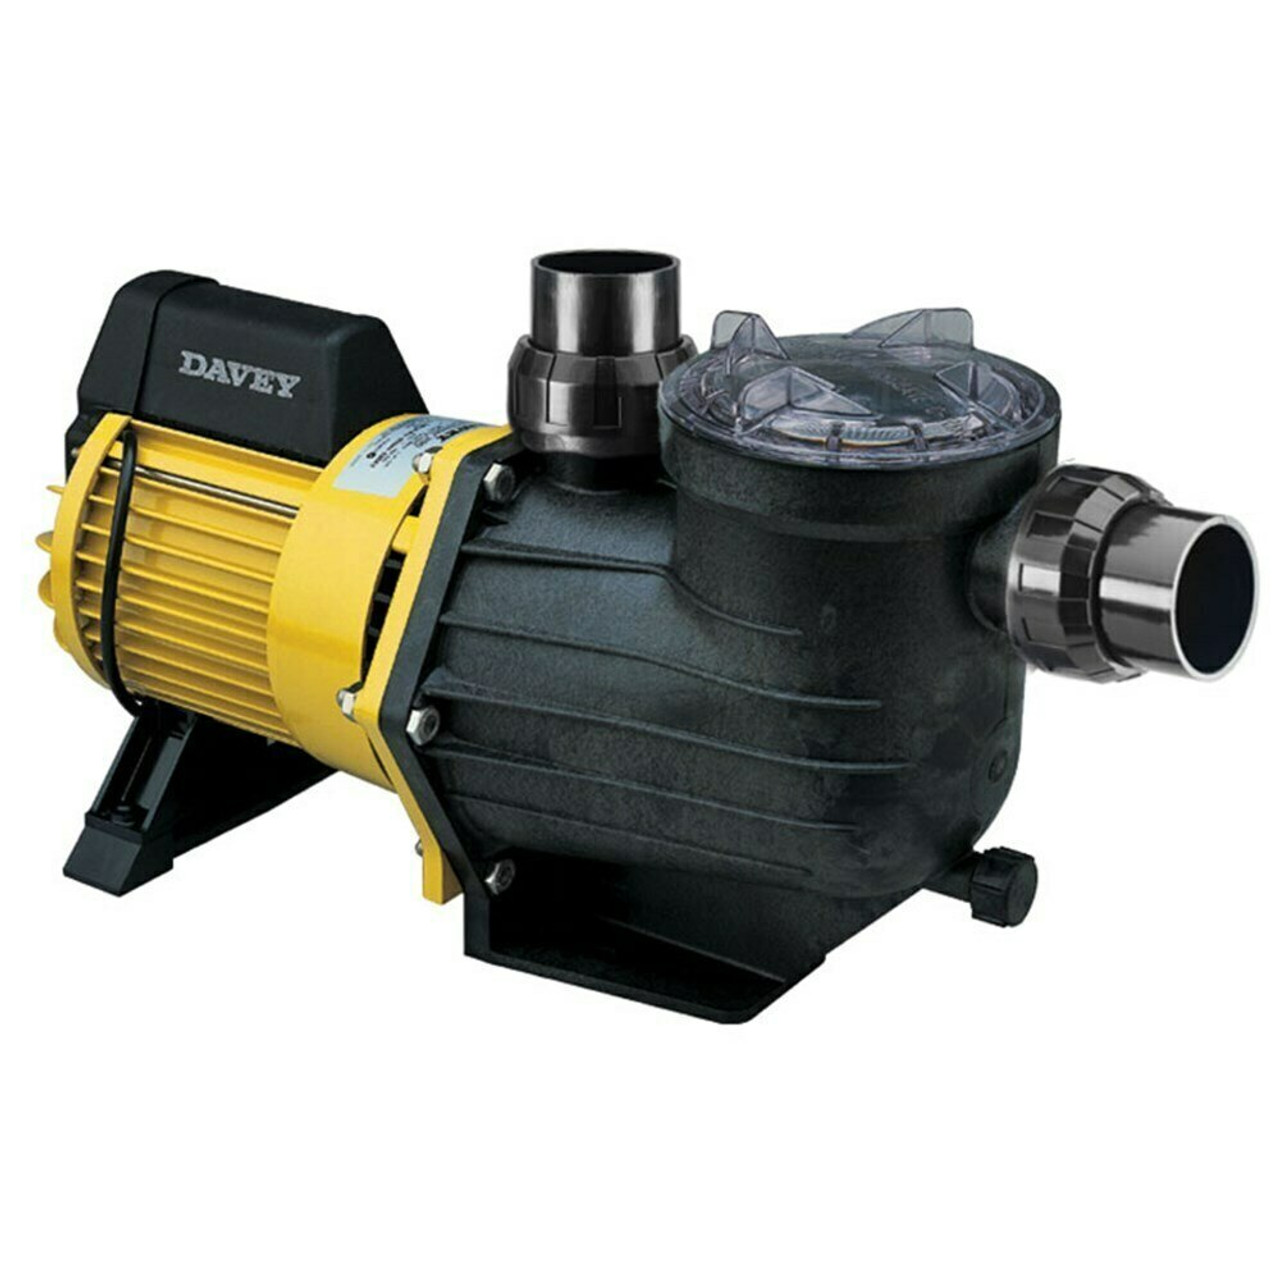 Davey PowerMaster PM350 pool pump